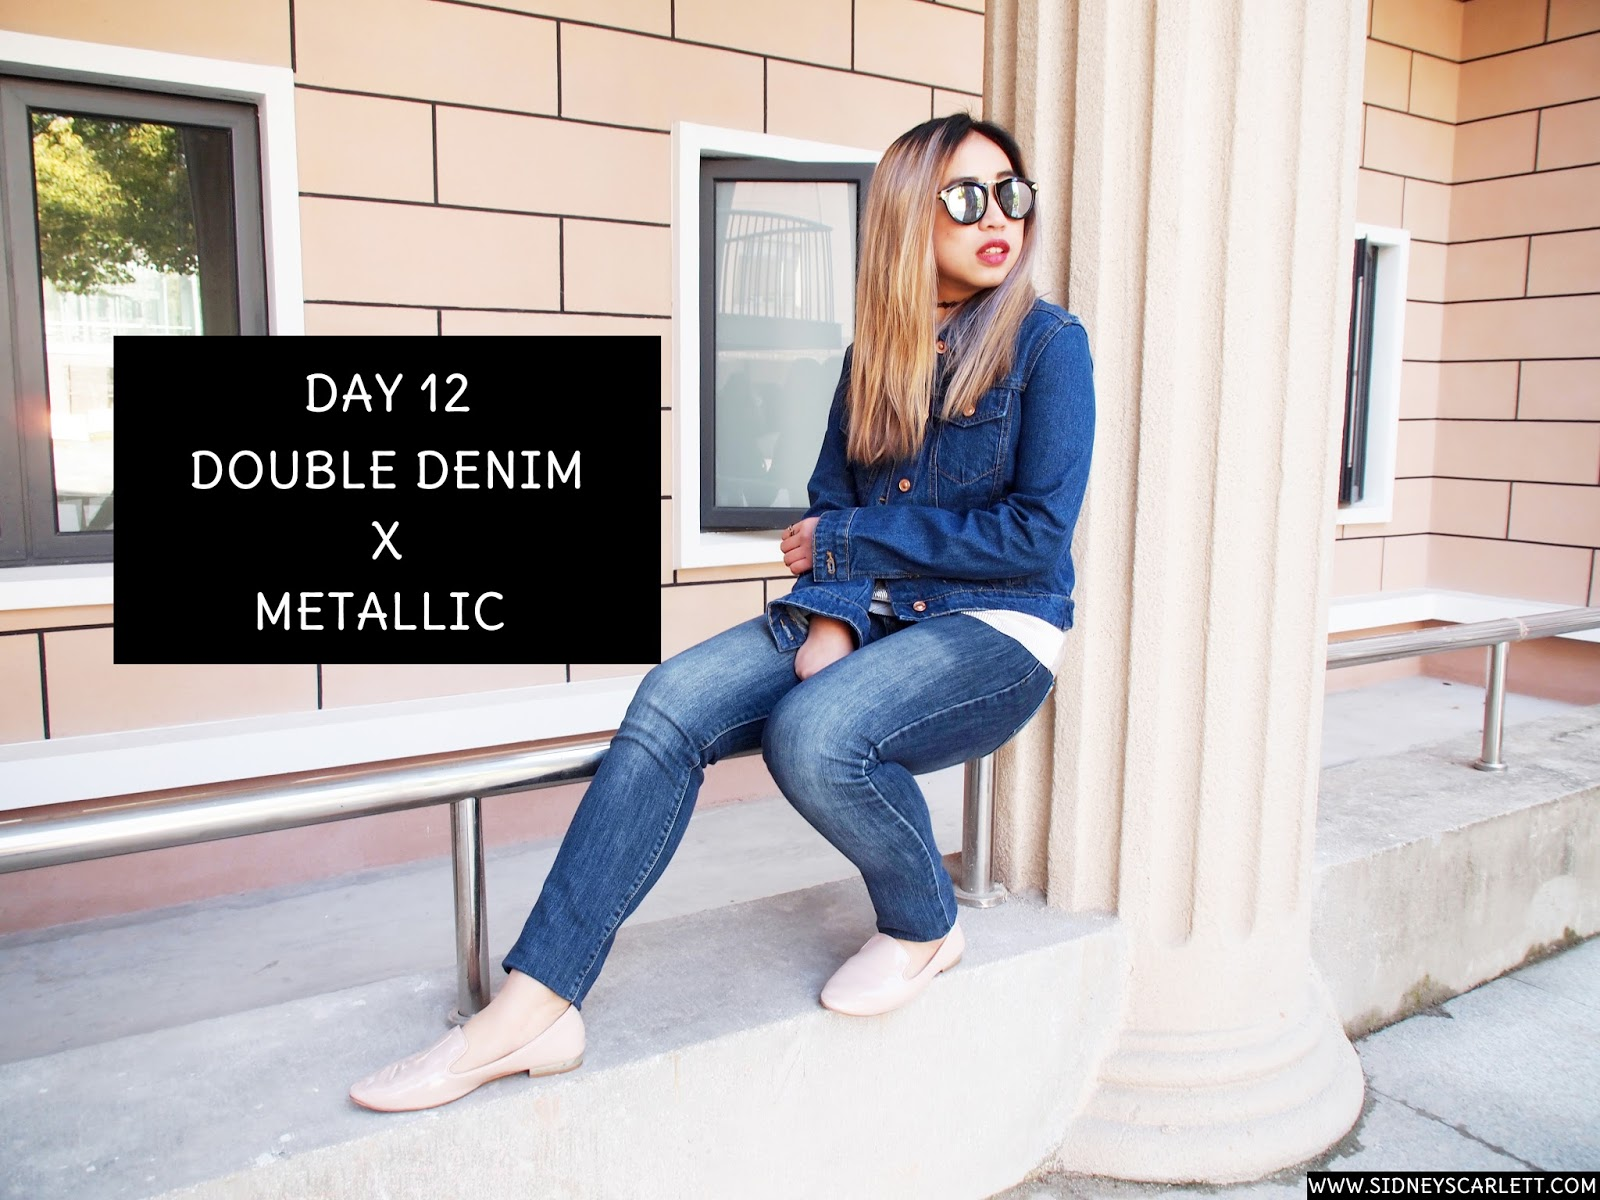 This is a photo of styling denim on denim with metallic by Sidney Scarlett from www.sidneyscarlett.com